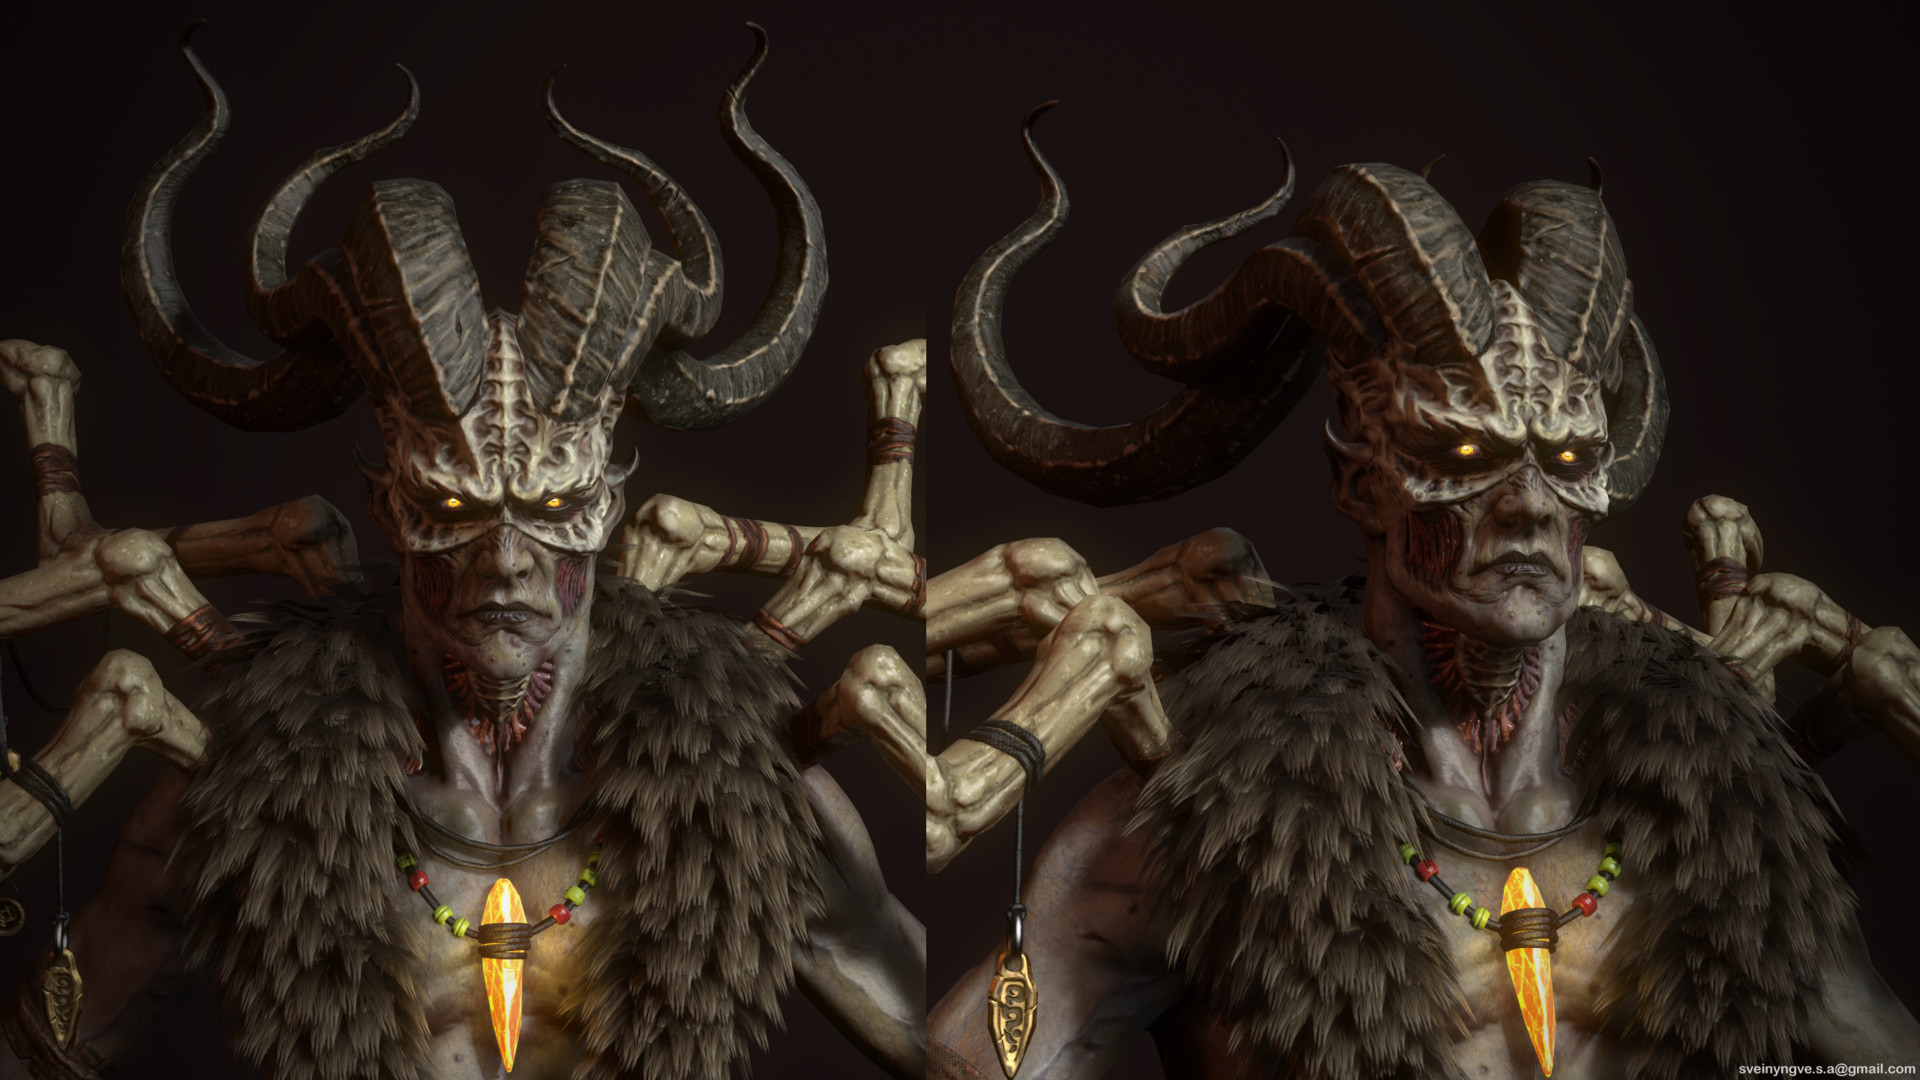 Also, diablo looks like that cause he